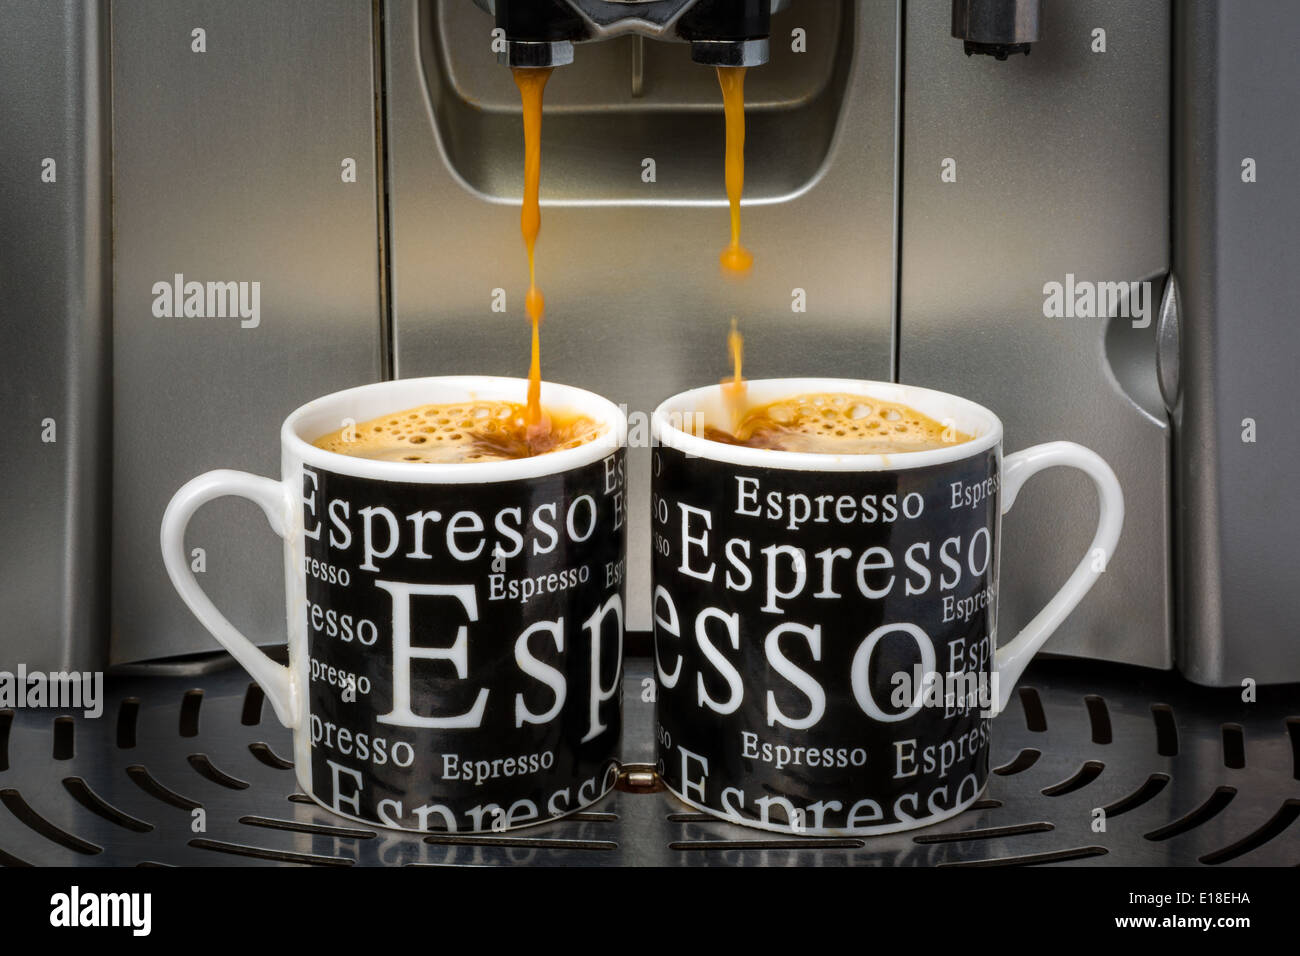 Two espresso cups filled by an automatic espresso machine - Stock Image